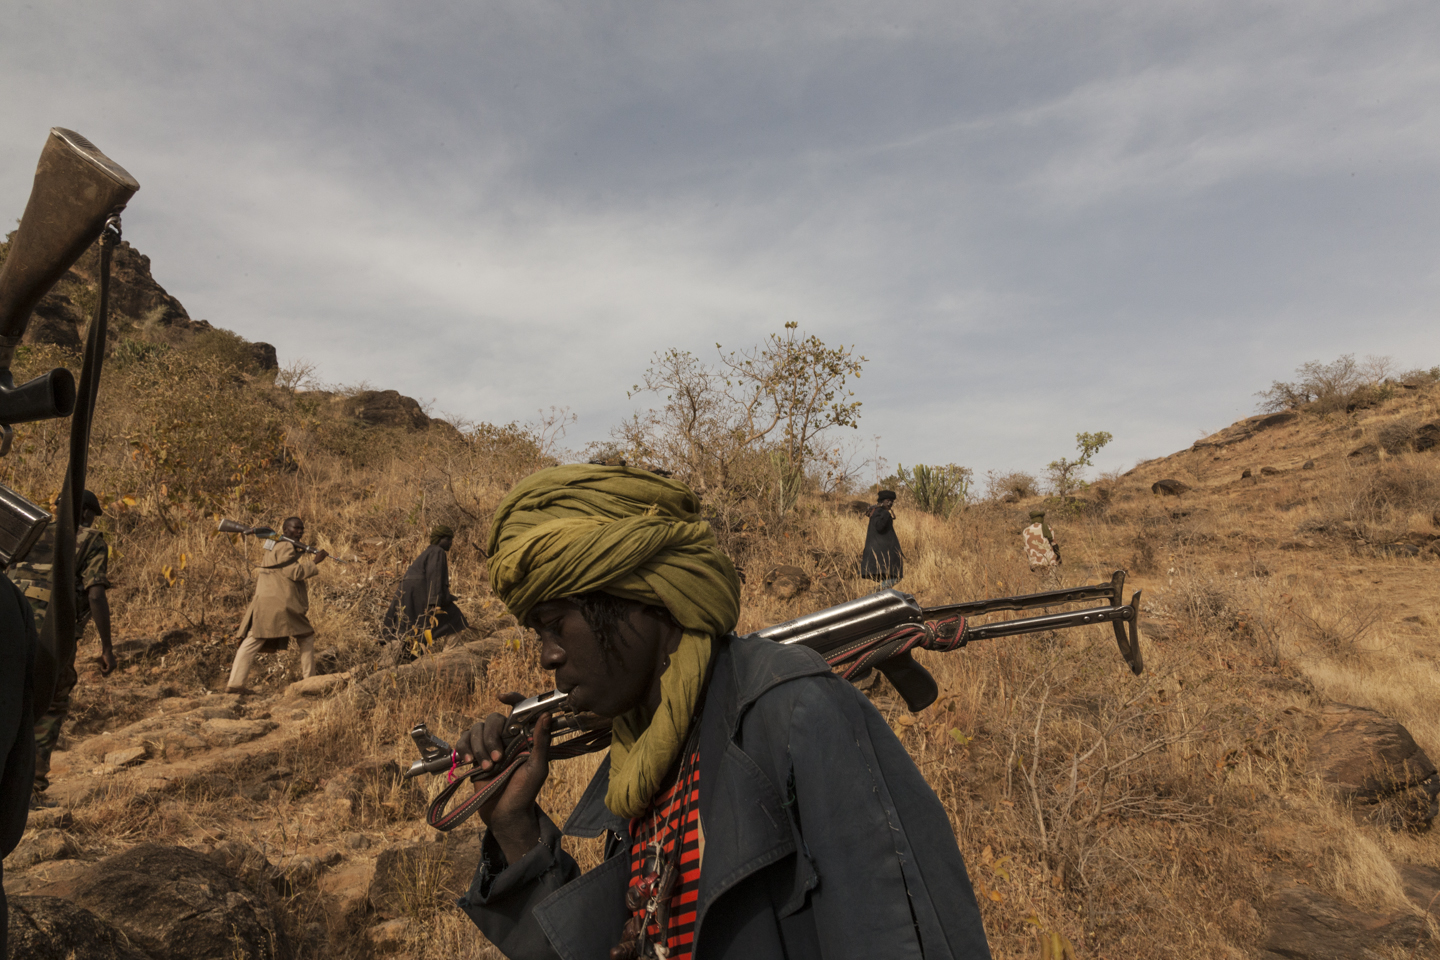 Members of the rebel group the Sudan Liberation Army led by Abdul Wahid (SLA-AW) climb towards the front lines in Jebel Marra, Central Darfur, Sudan, March 4, 2015.